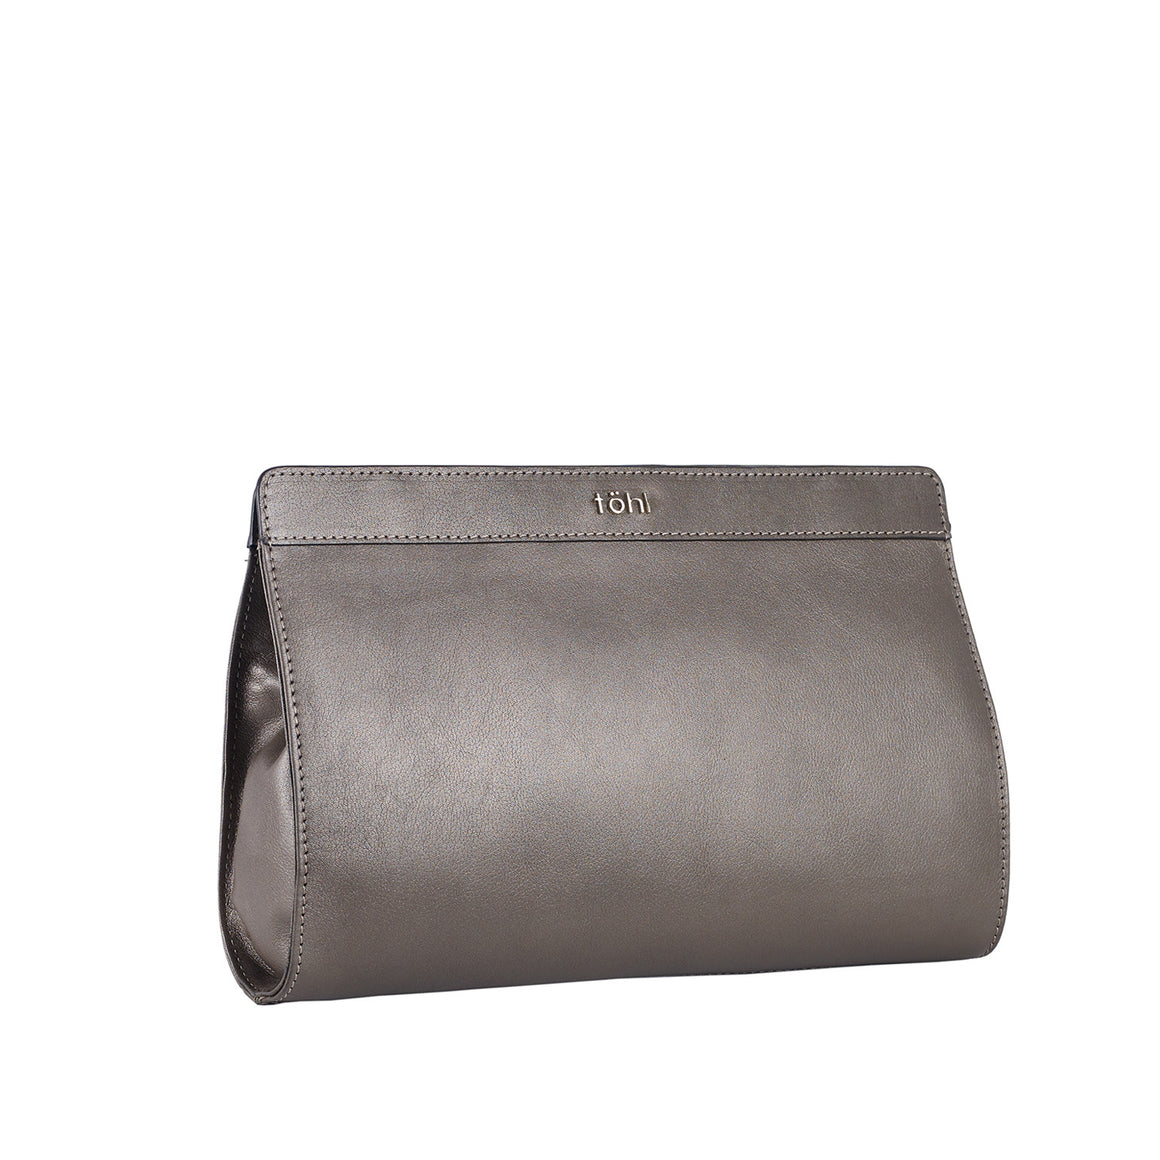 CH 0003 - TOHL FOLEY WOMEN'S GRIP CLUTCH - METALLIC COPPER